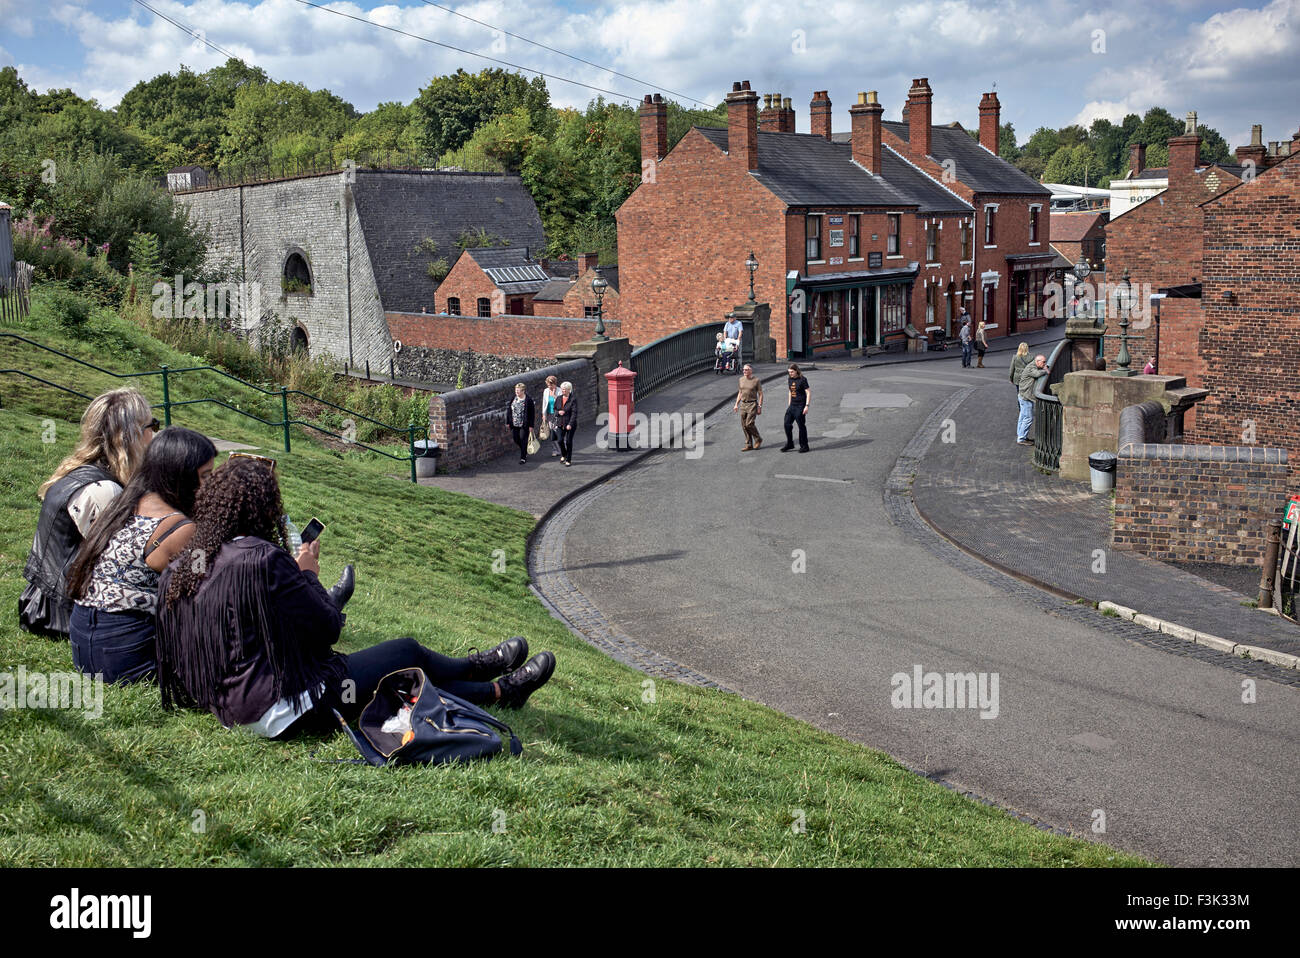 Overview of the main street at the Black Country Living Museum Dudley West Midlands England UK - Stock Image